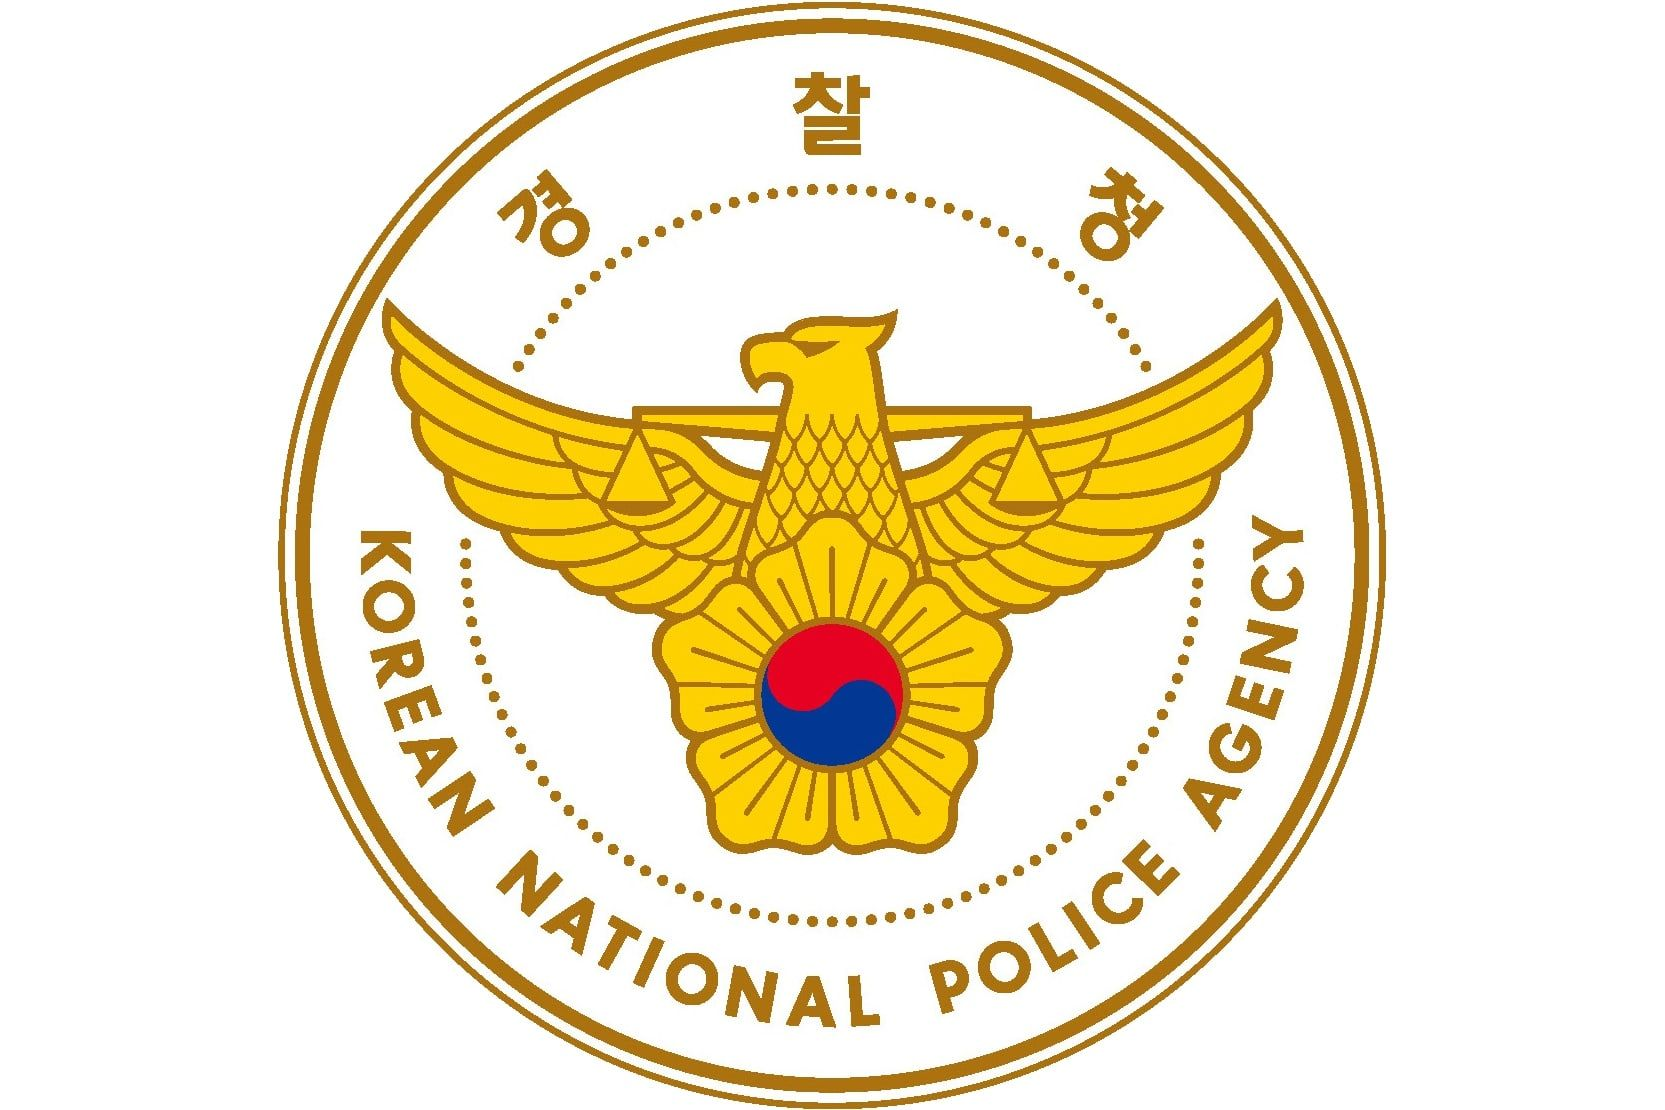 Korea Police Commissioner General Reveals Plans For Investigation Of Corruption In The Force